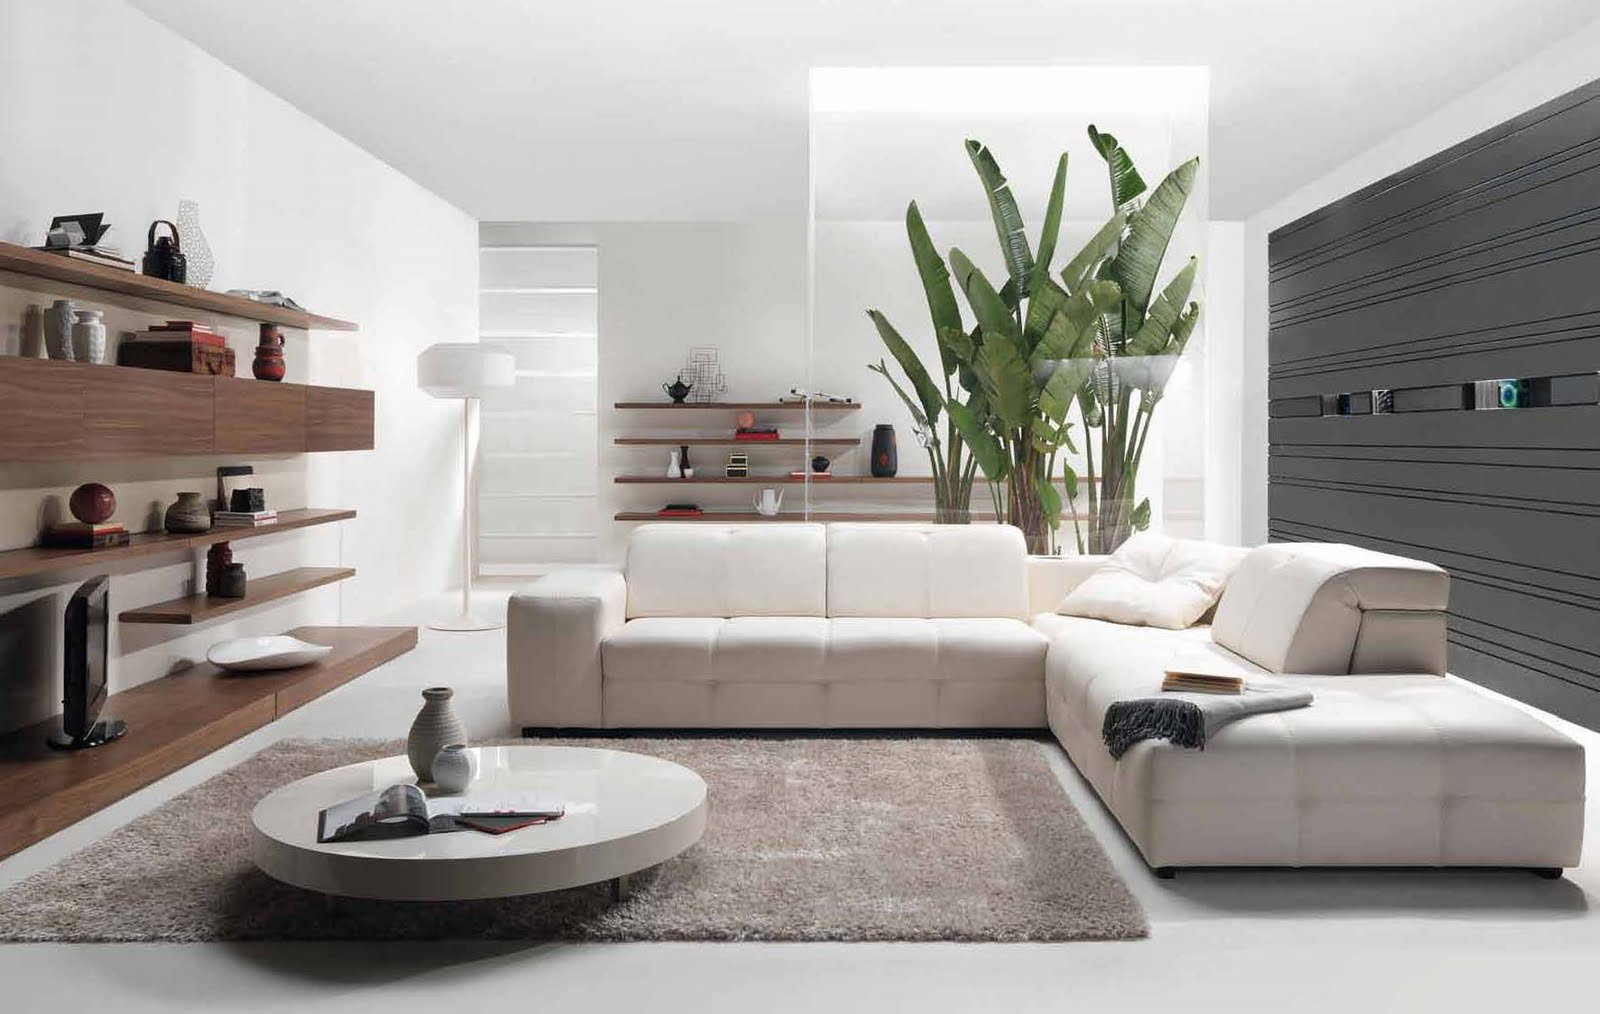 new modern living room design modern home interior amp furniture designs amp diy ideas 23082